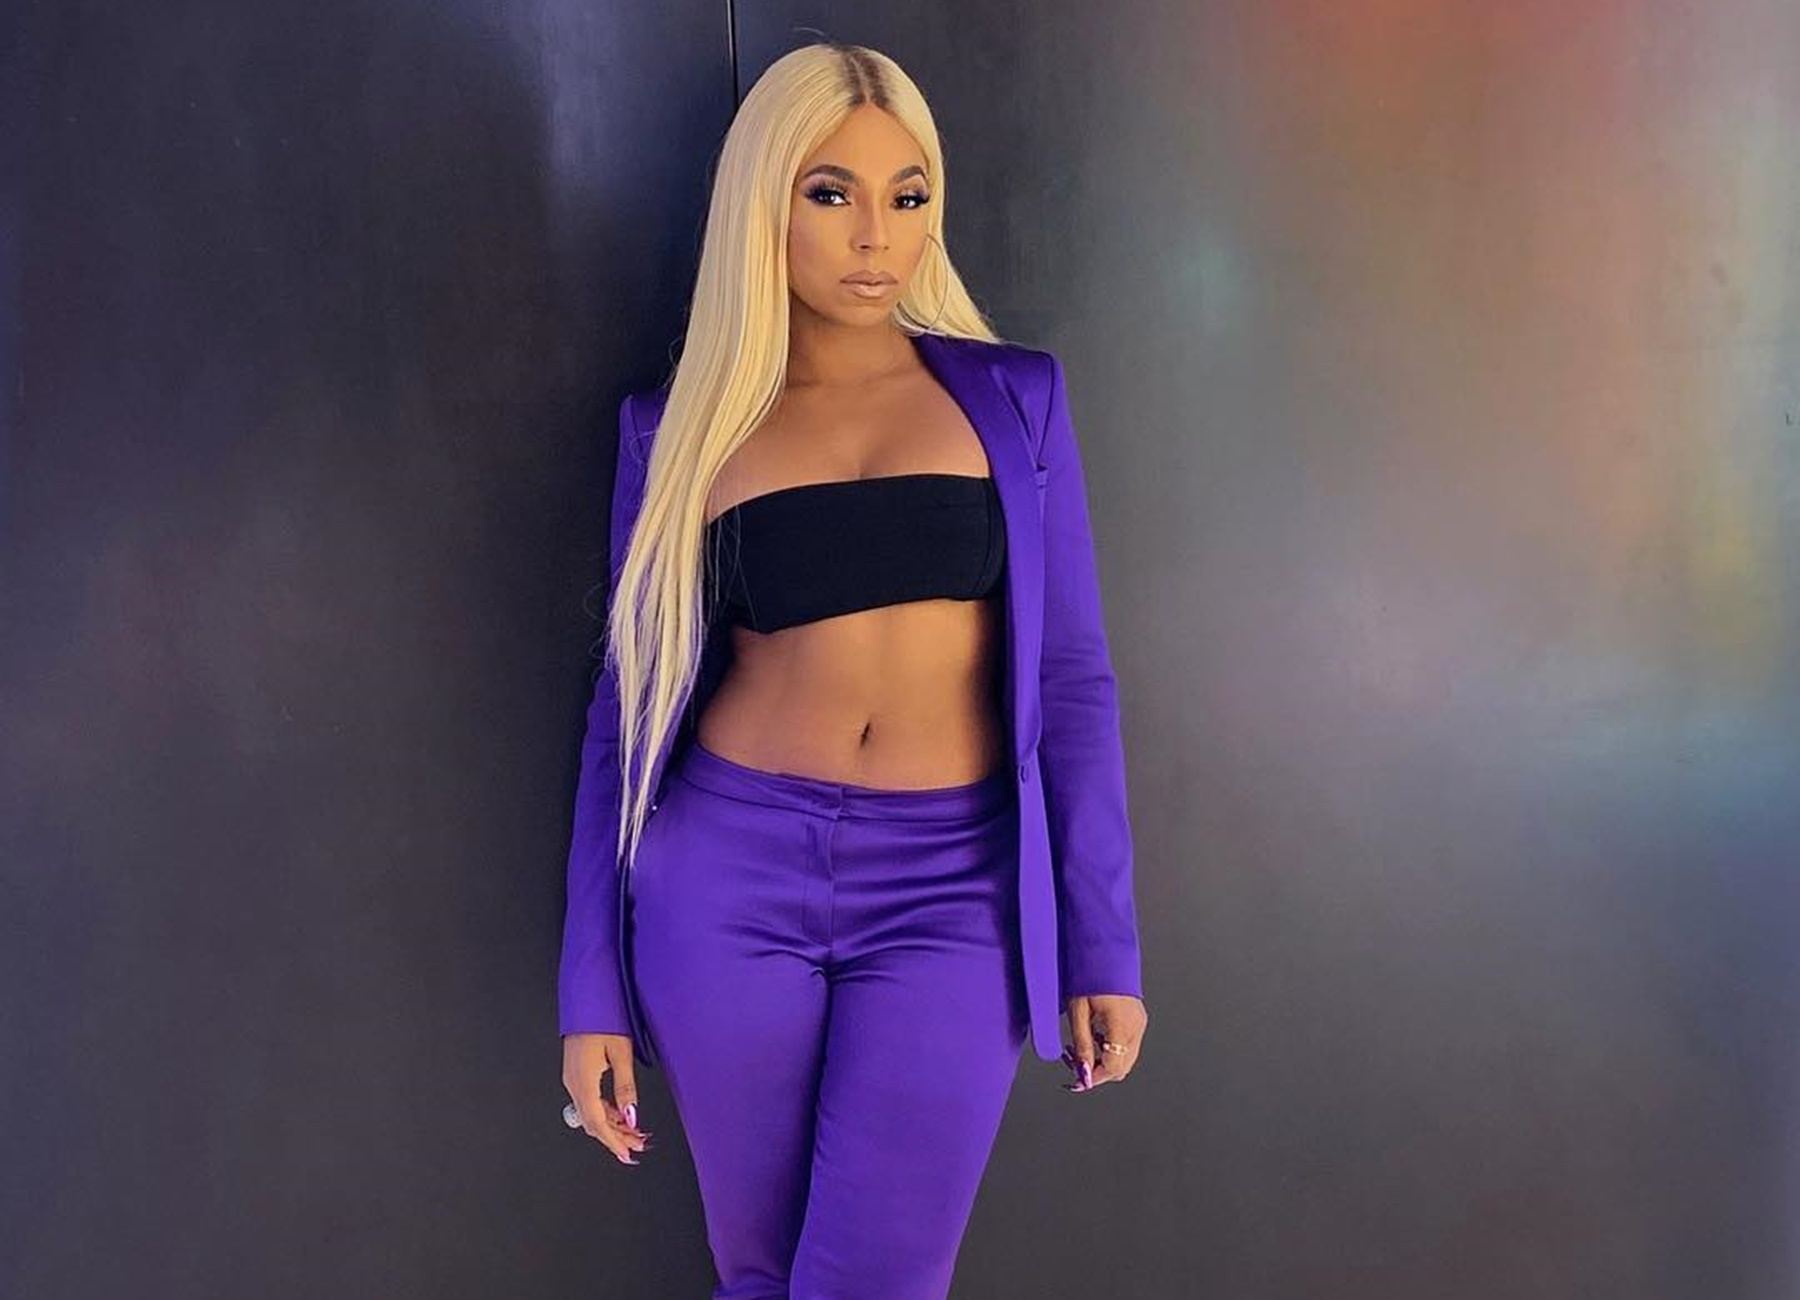 ashanti-puts-her-non-gmo-figure-on-full-display-in-barely-there-bathing-suit-picture-proves-that-she-is-right-to-be-a-pescatarian-like-tiny-harris